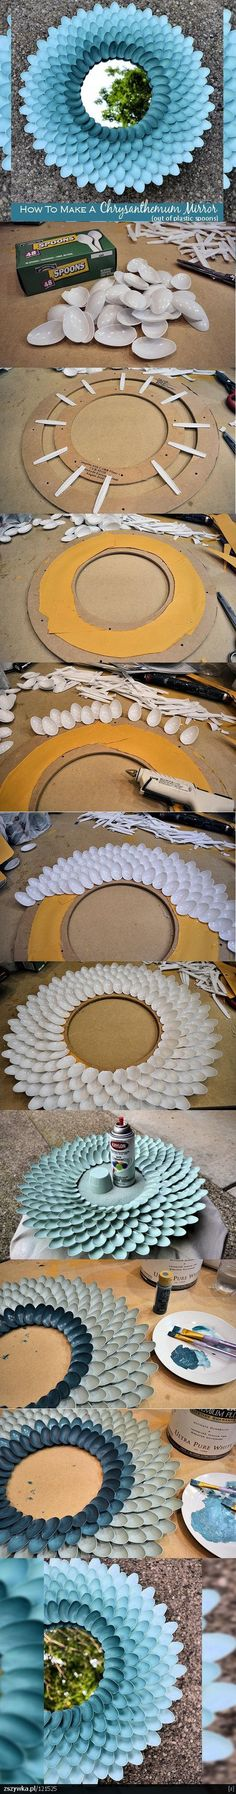 Plastic spoons into chrysanthemum